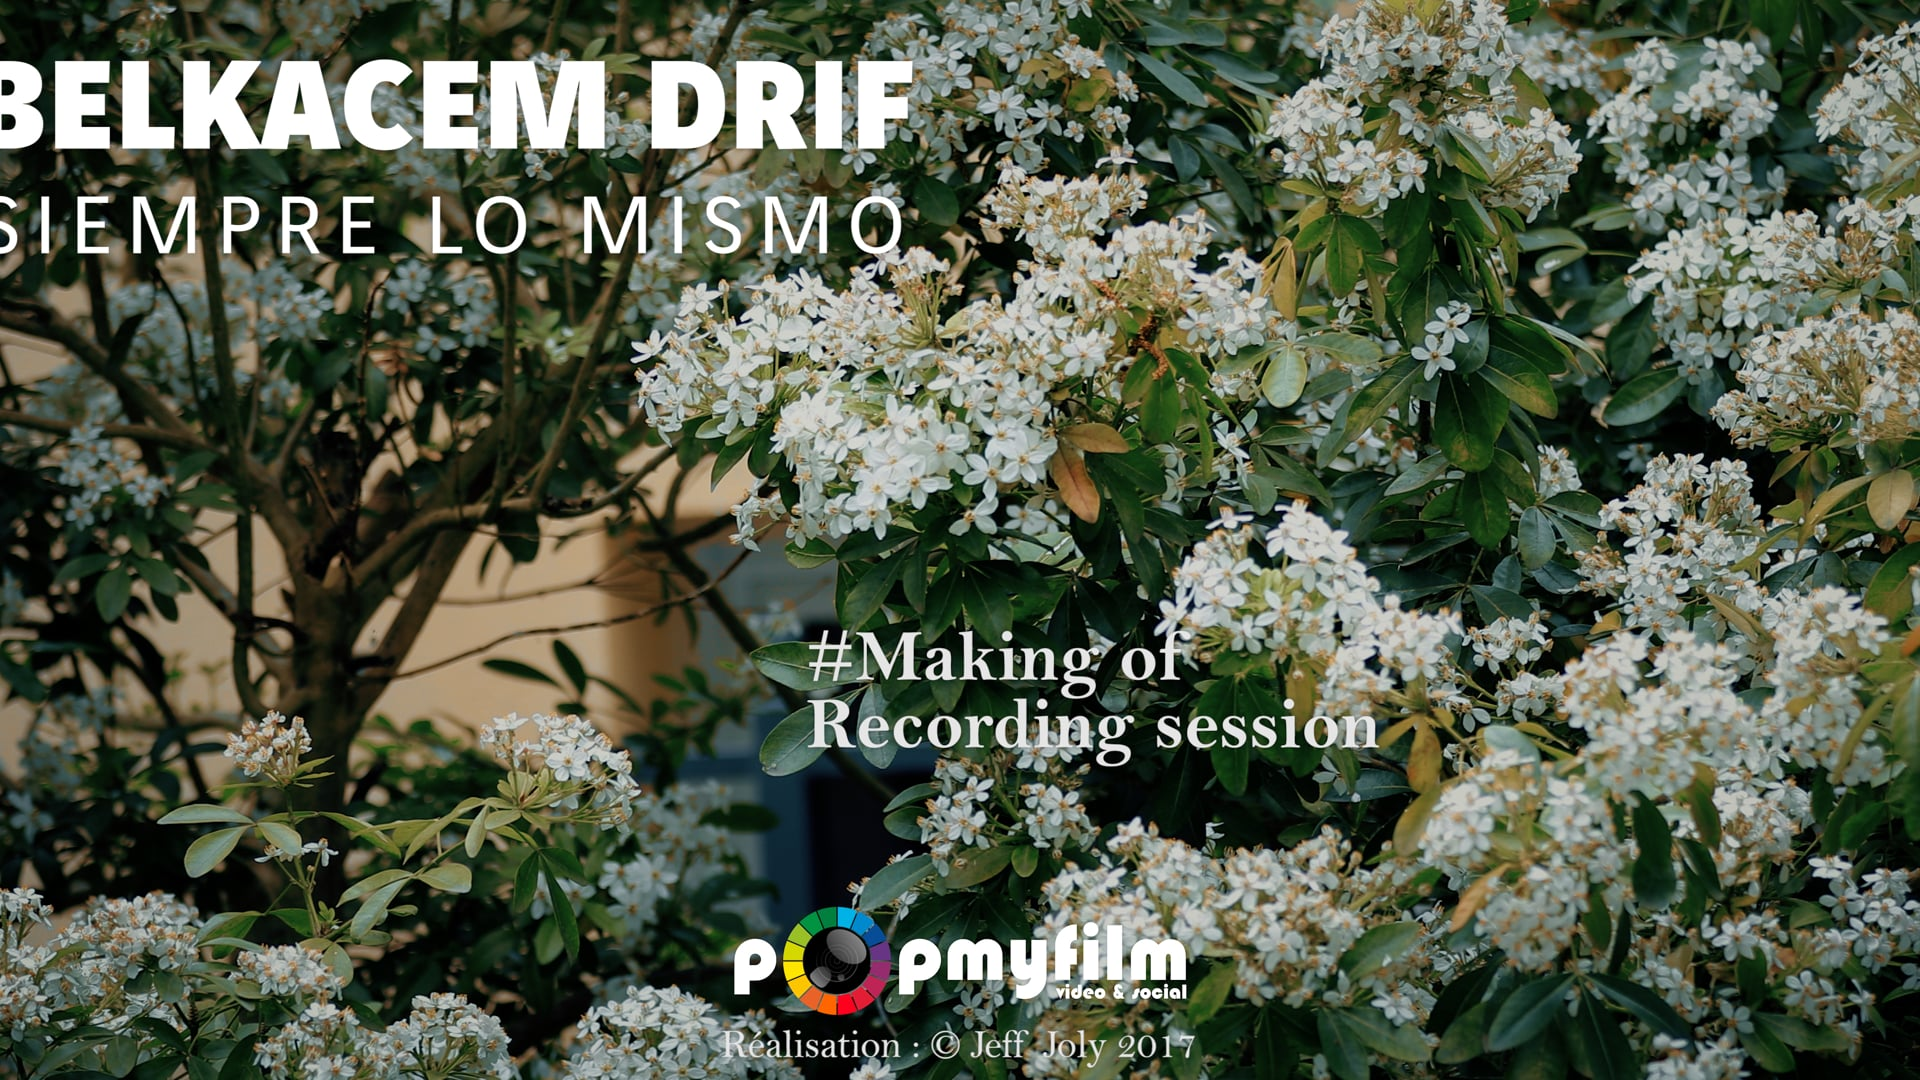 BELKACEM DRIF - Siempre lo mismo- Making-of - Recording session 2017-04-22